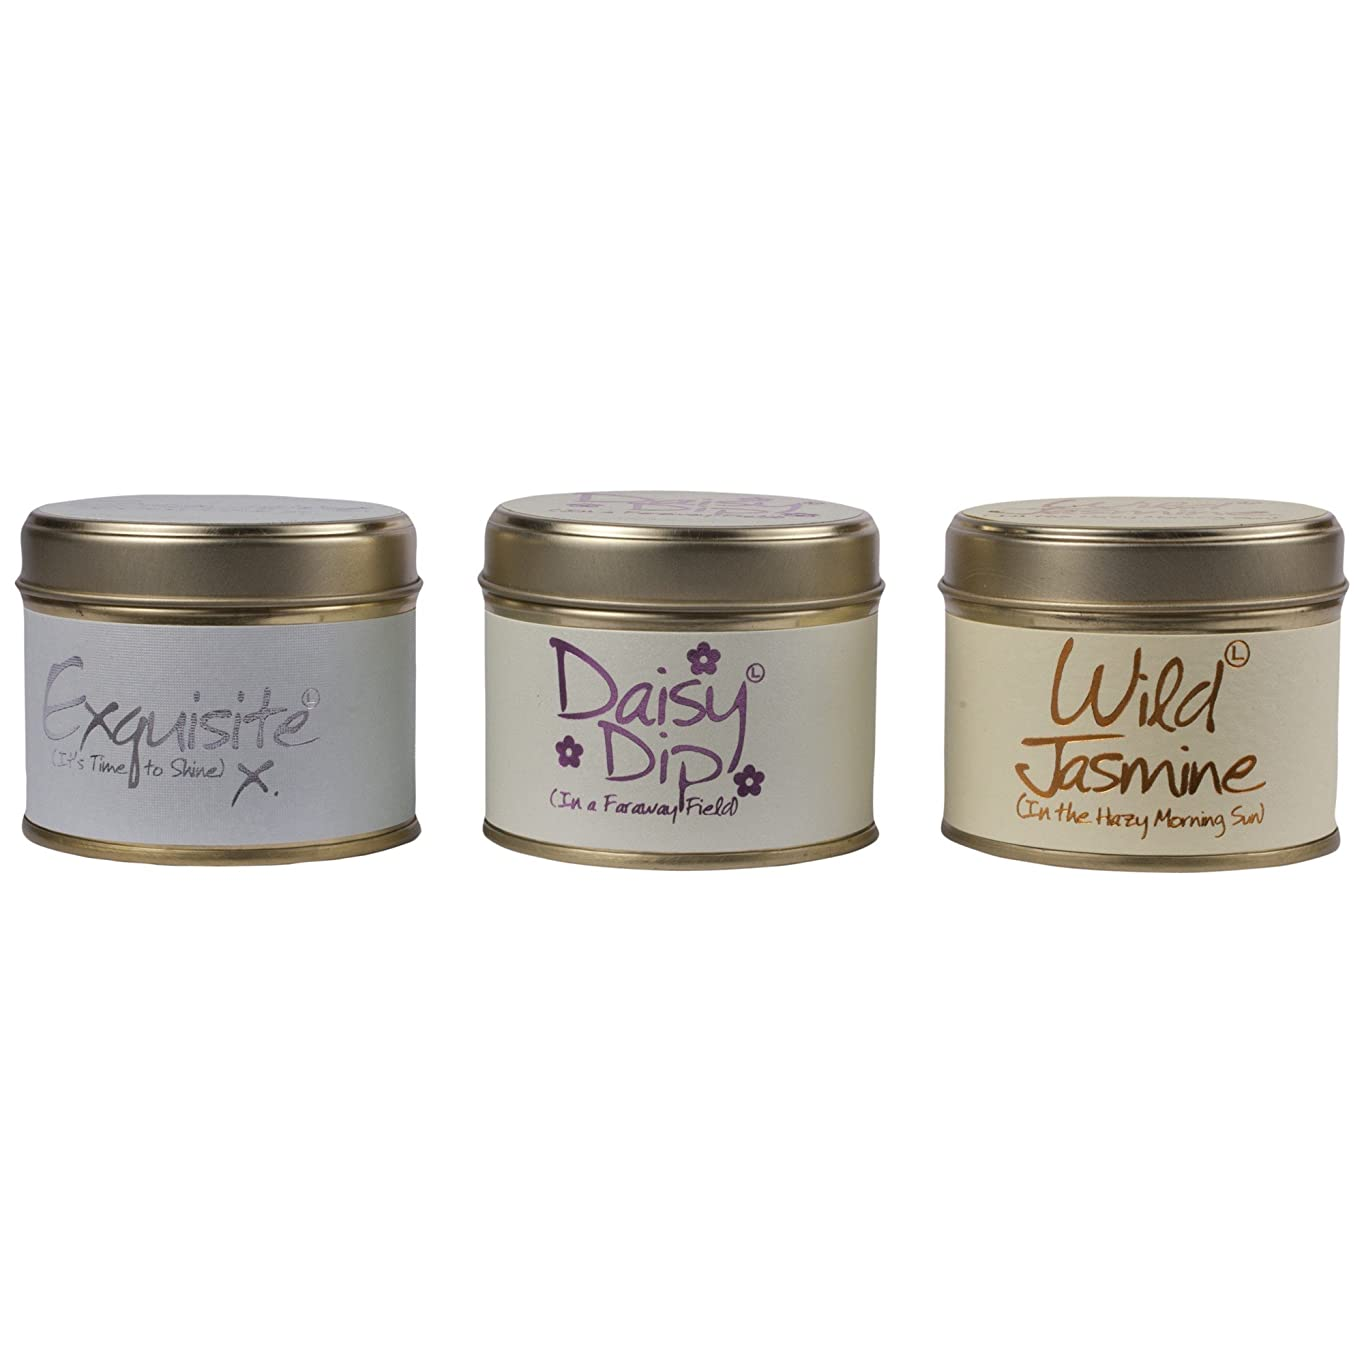 Lily-Flame Scented Candle Trio (Pack of 2) - ユリ炎香りのキャンドルトリオ (Lily-Flame) (x2) [並行輸入品]